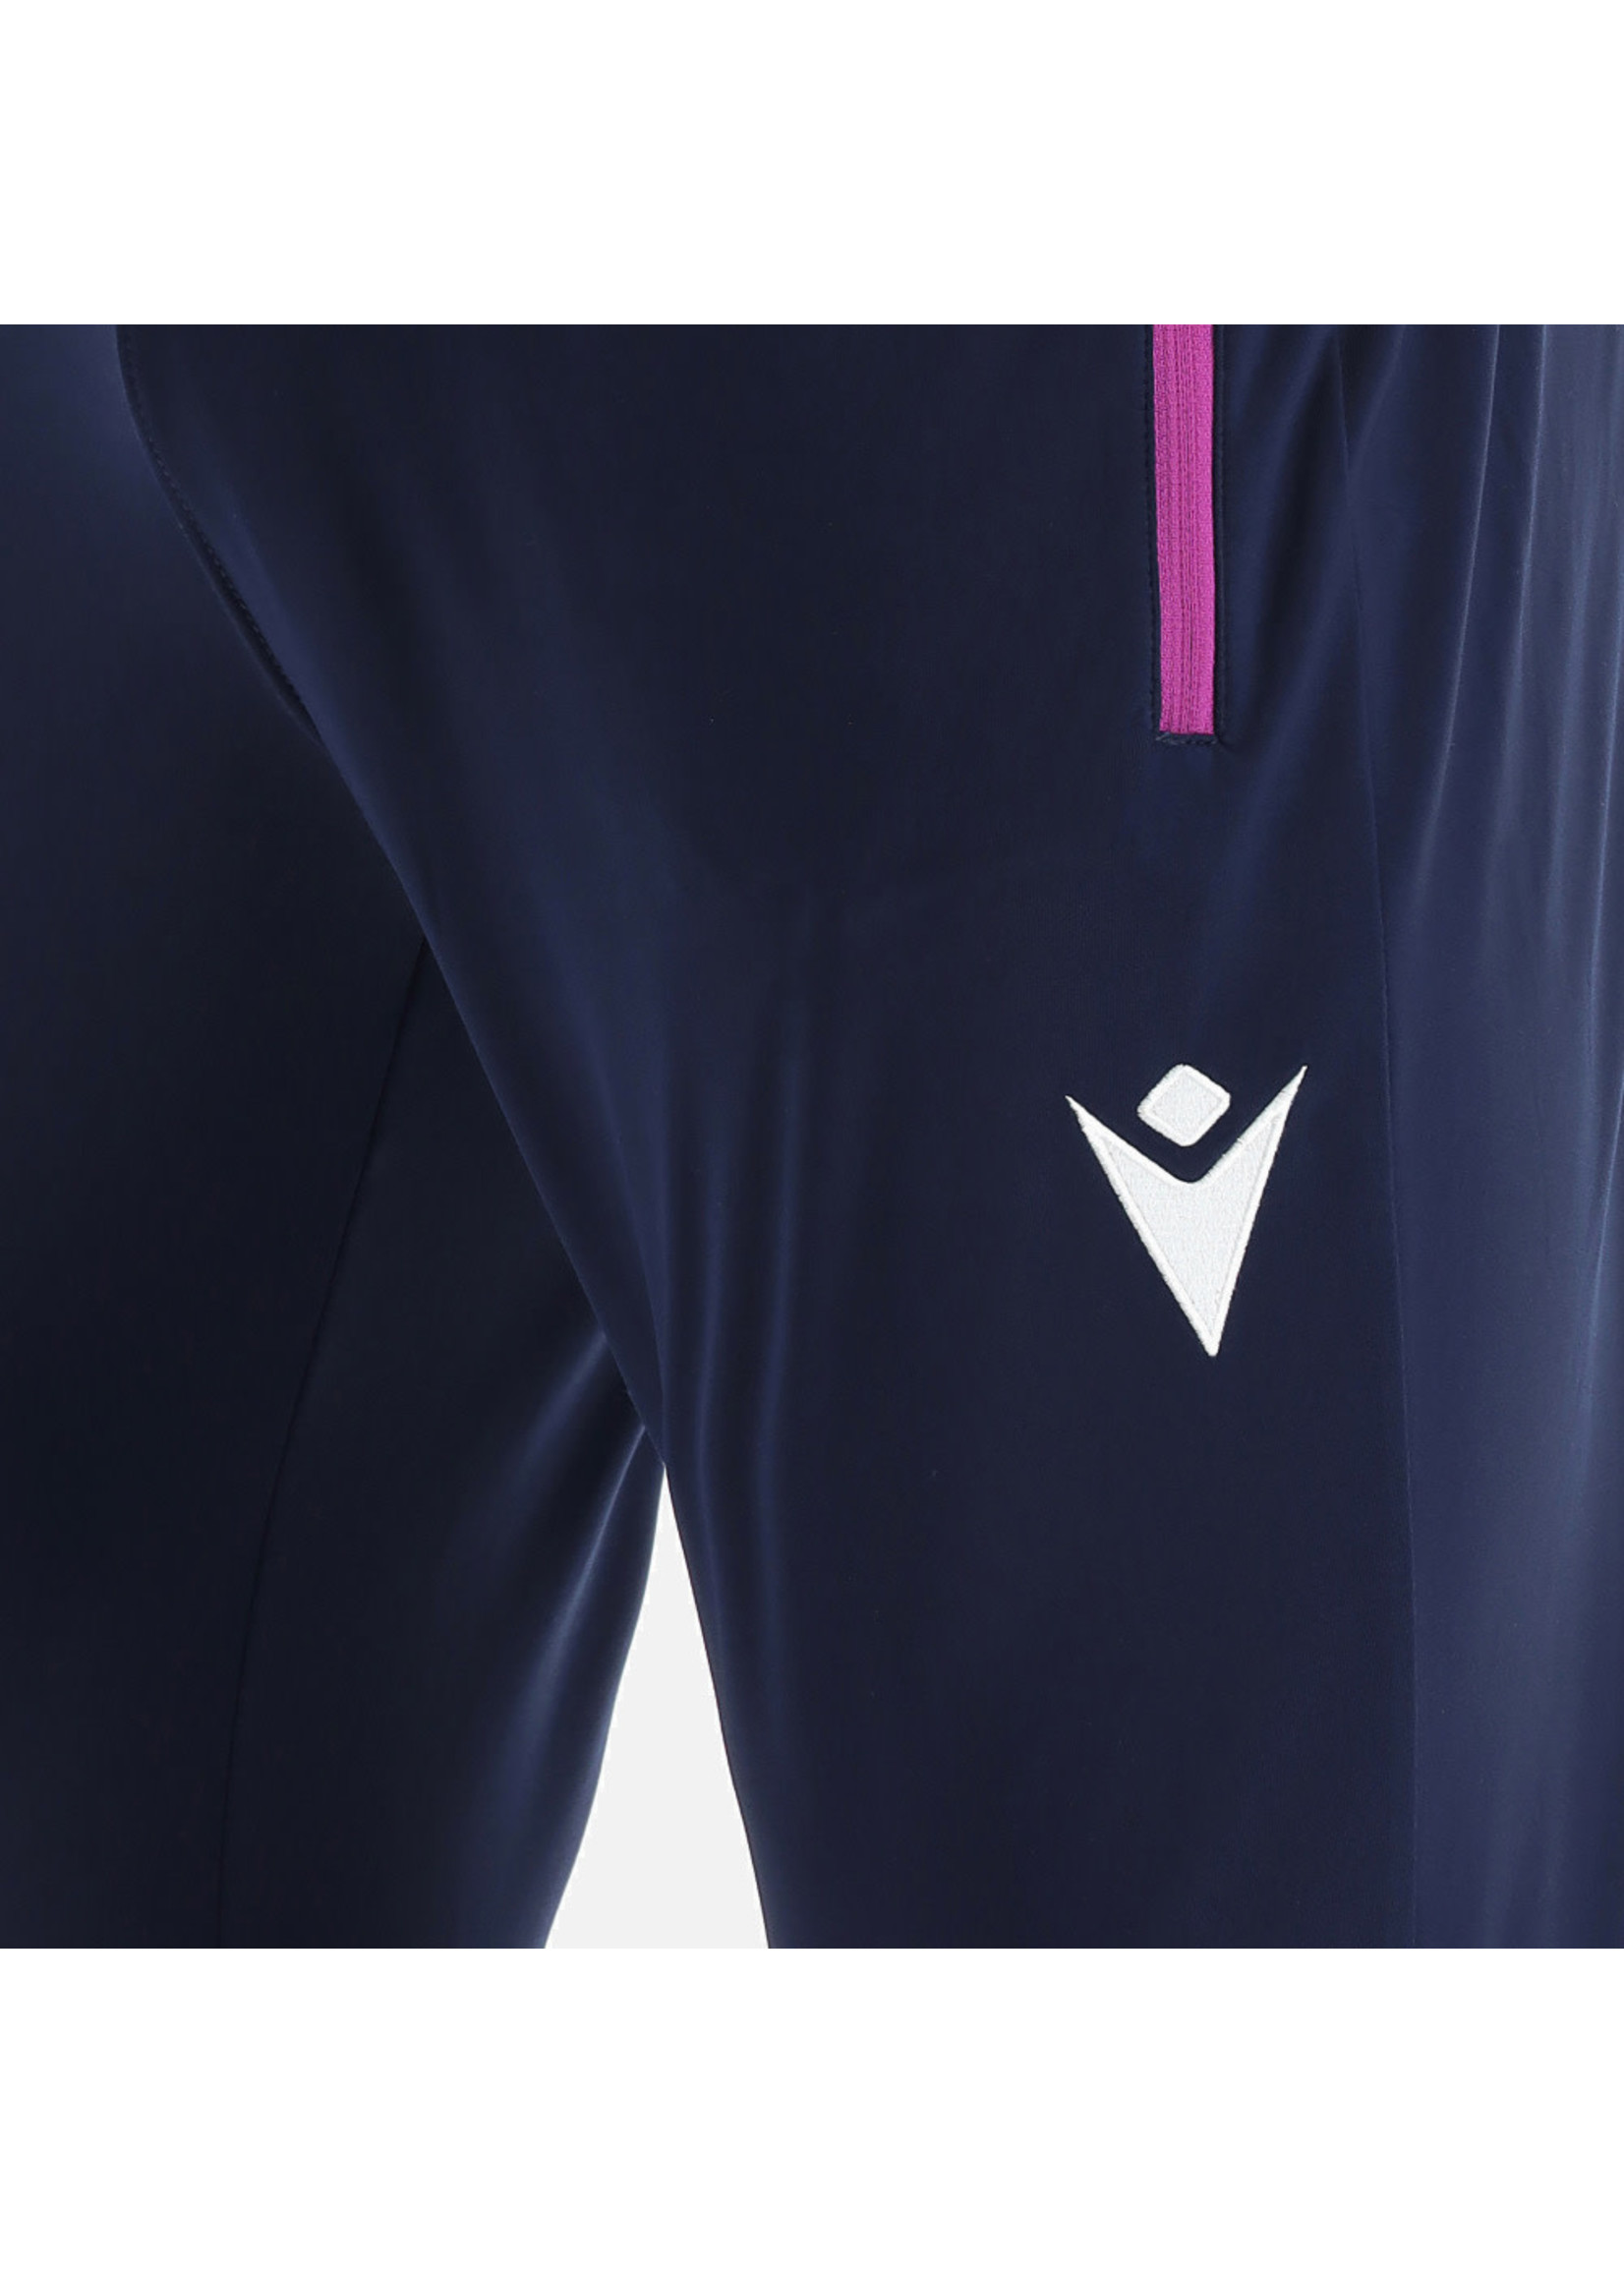 Macron Macron Scotland Rugby - Fitted Track Pant (2021/22) - Navy